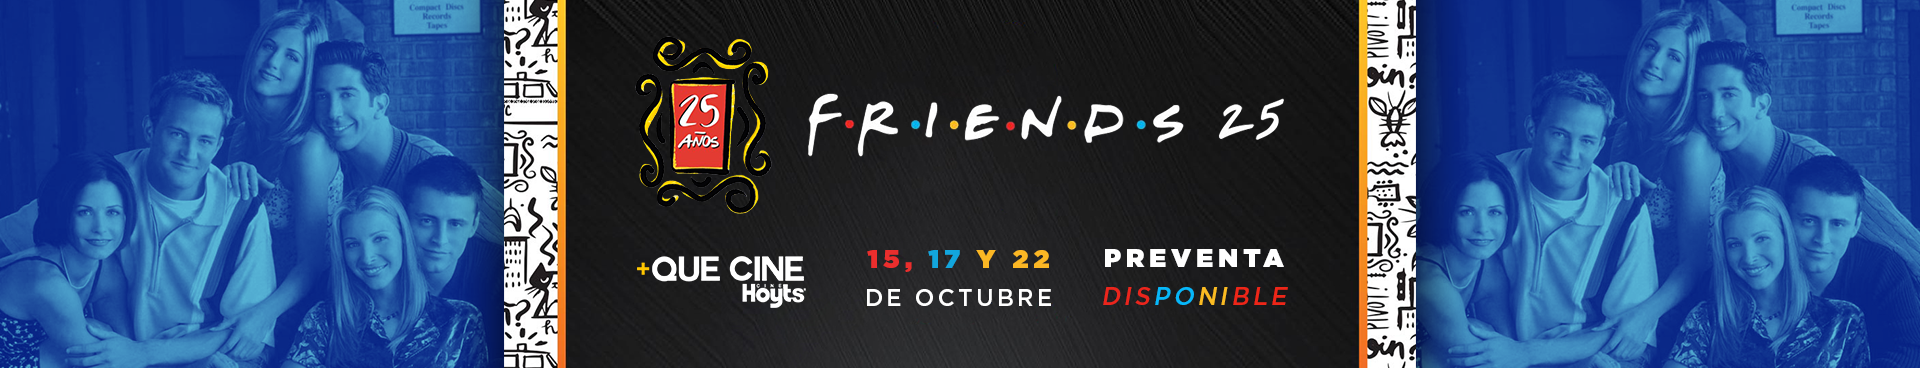 PREVENTA DISPONIBLE: +QUE CINE FRIENDS ANIVERSARIO 15, 17 Y 22 DE OCTUBRE